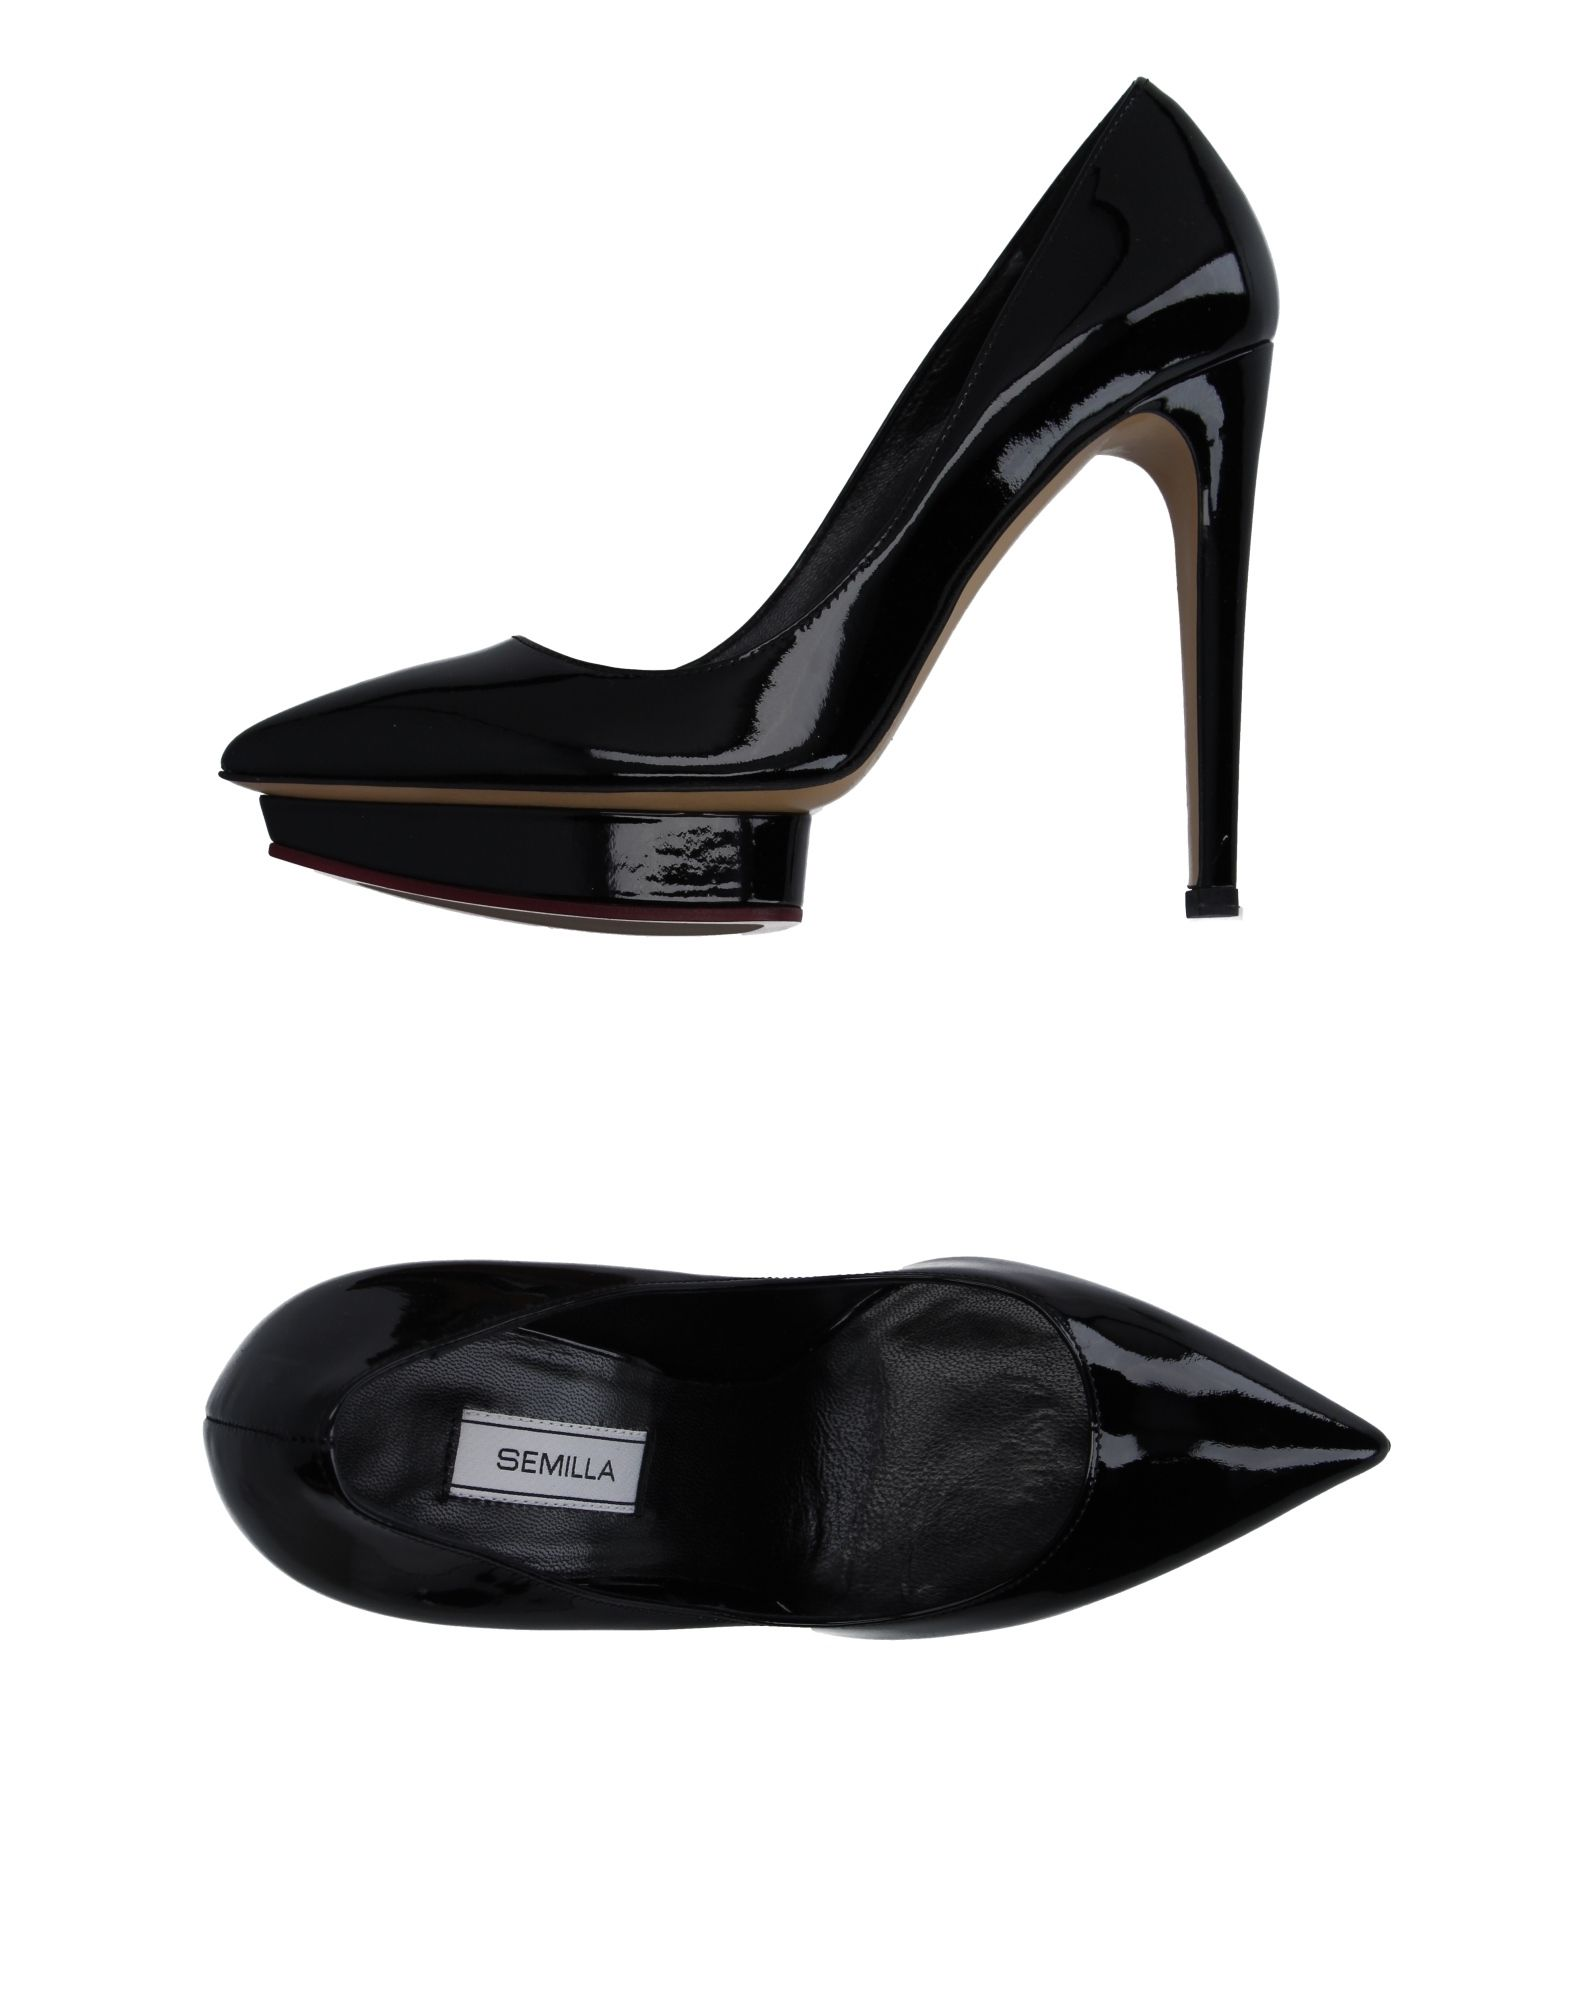 SEMILLA Pump in Black